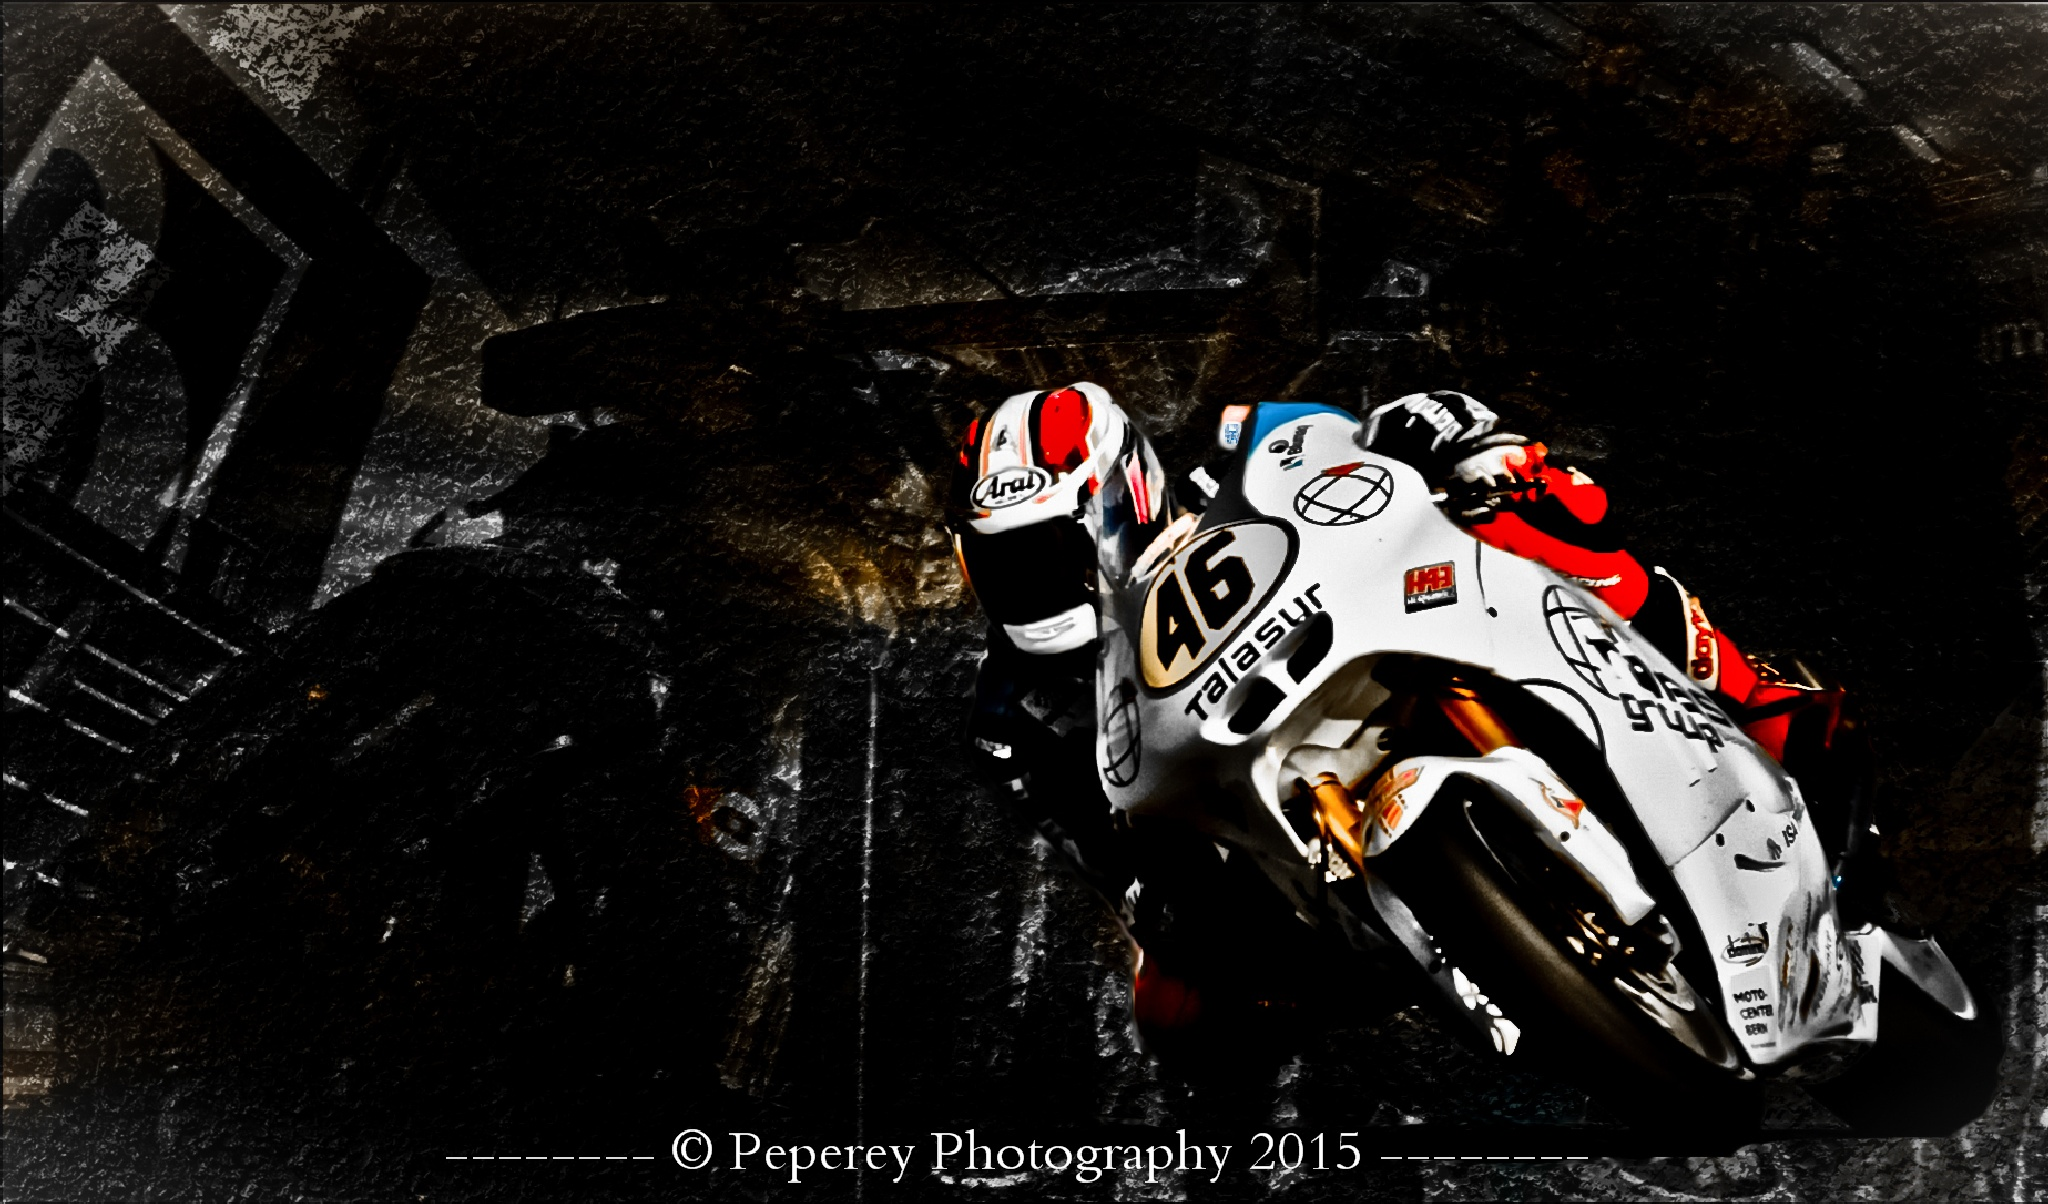 H43 by pepereyphotography